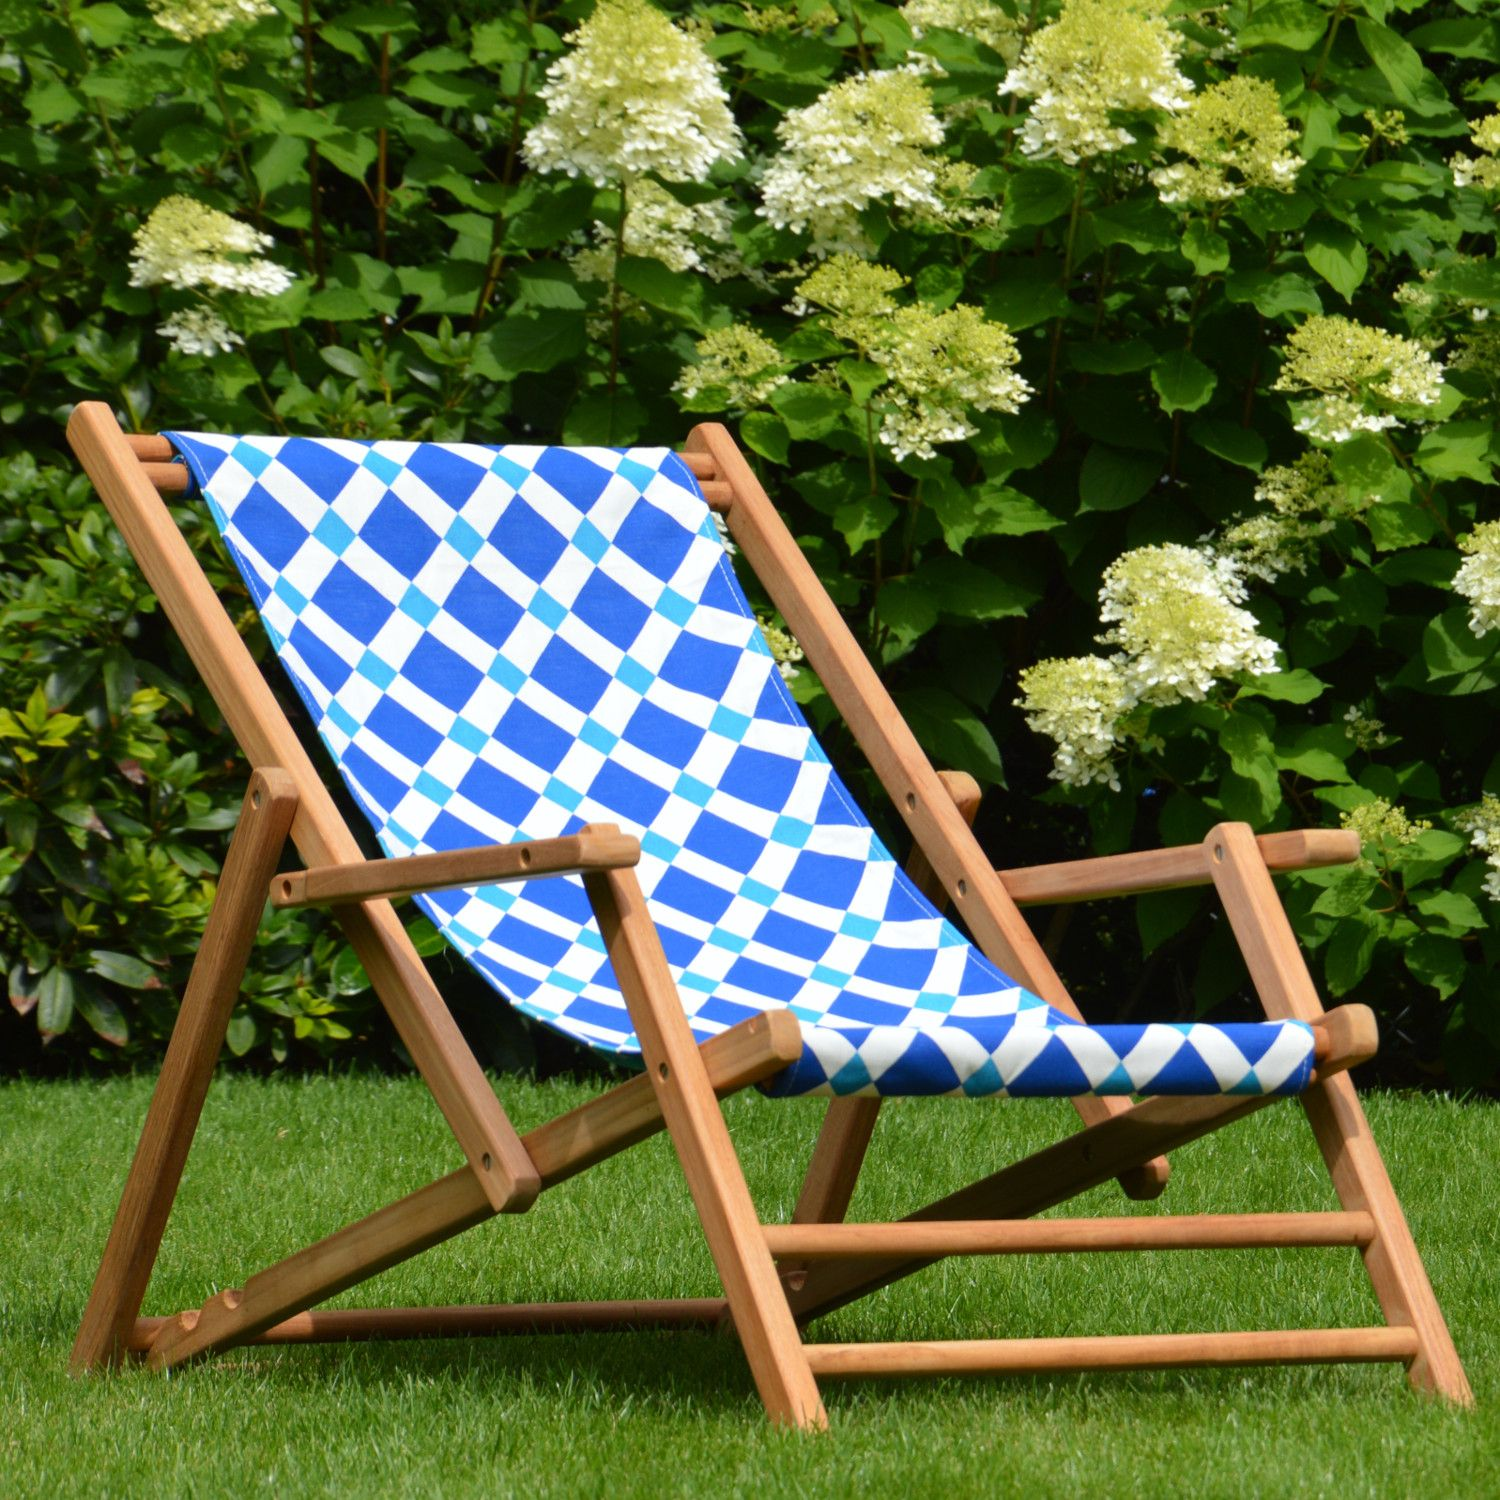 Jan Kurtz Maxx Deckchair Deckchair Outdoor Dekorationen Und